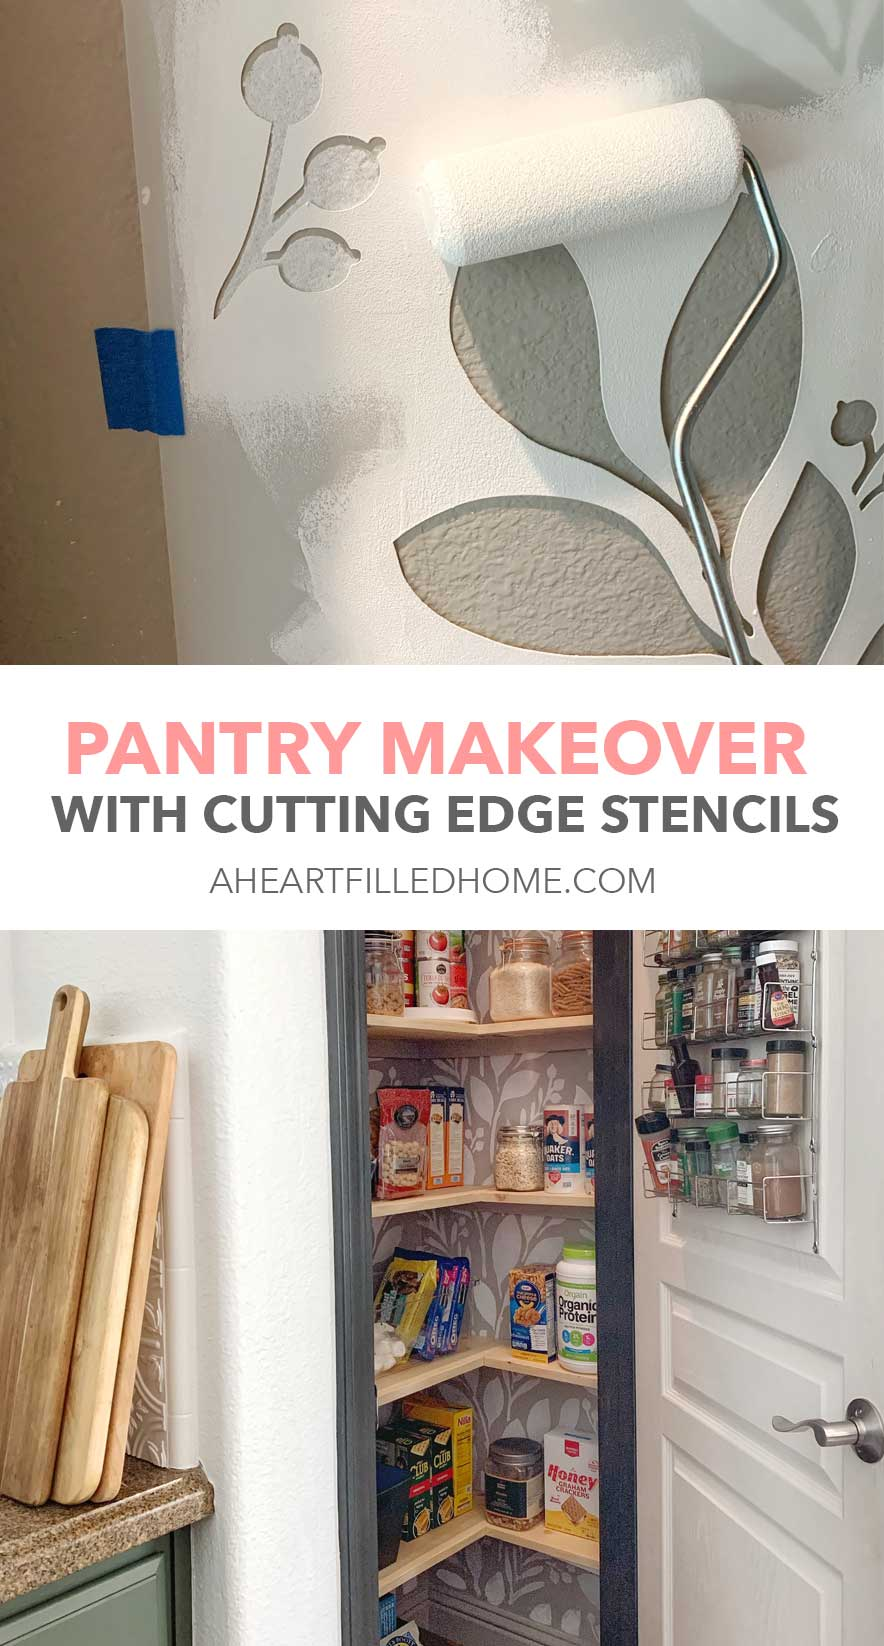 Pantry Makeover with Cutting Edge Stencils from A Heart Filled Home